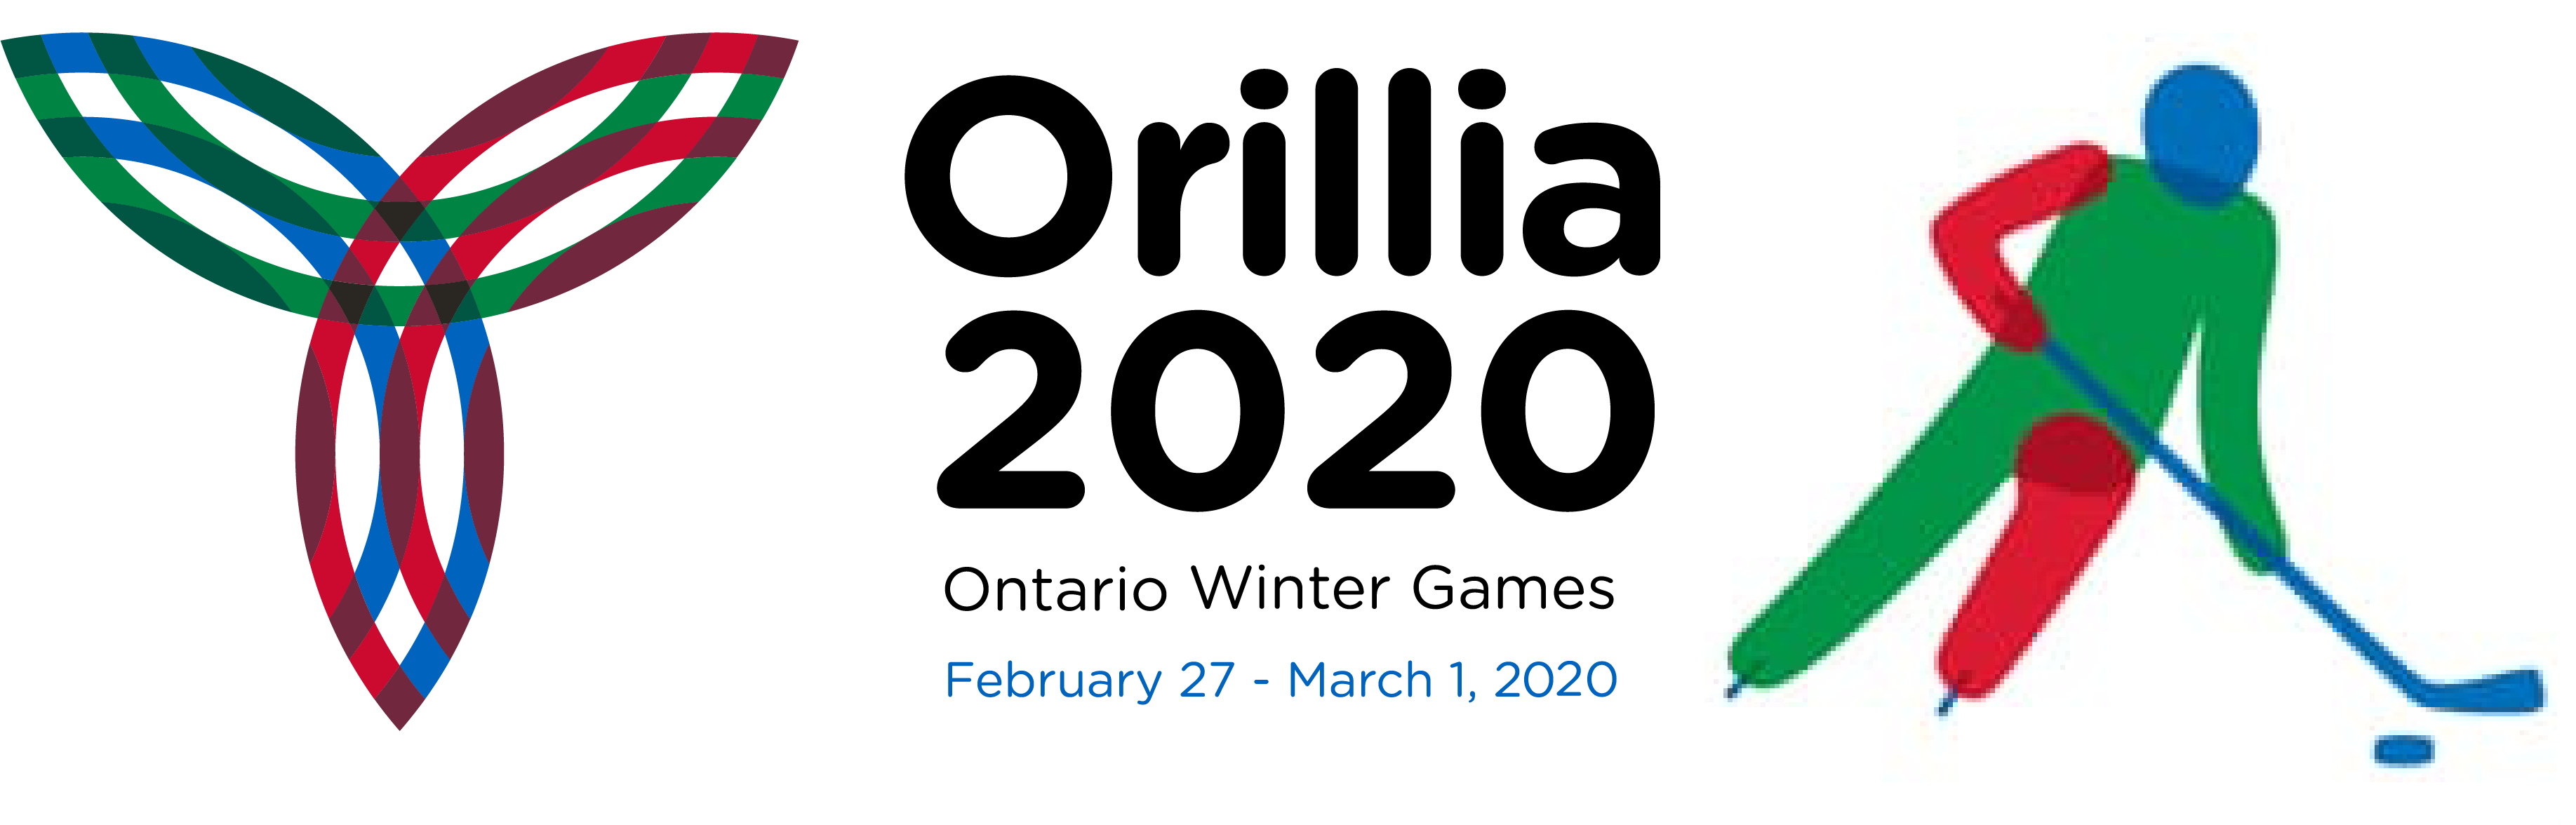 EIGHT MEN'S HOCKEY TEAMS SET TO COMPETE IN THE ONTARIO WINTER GAMES